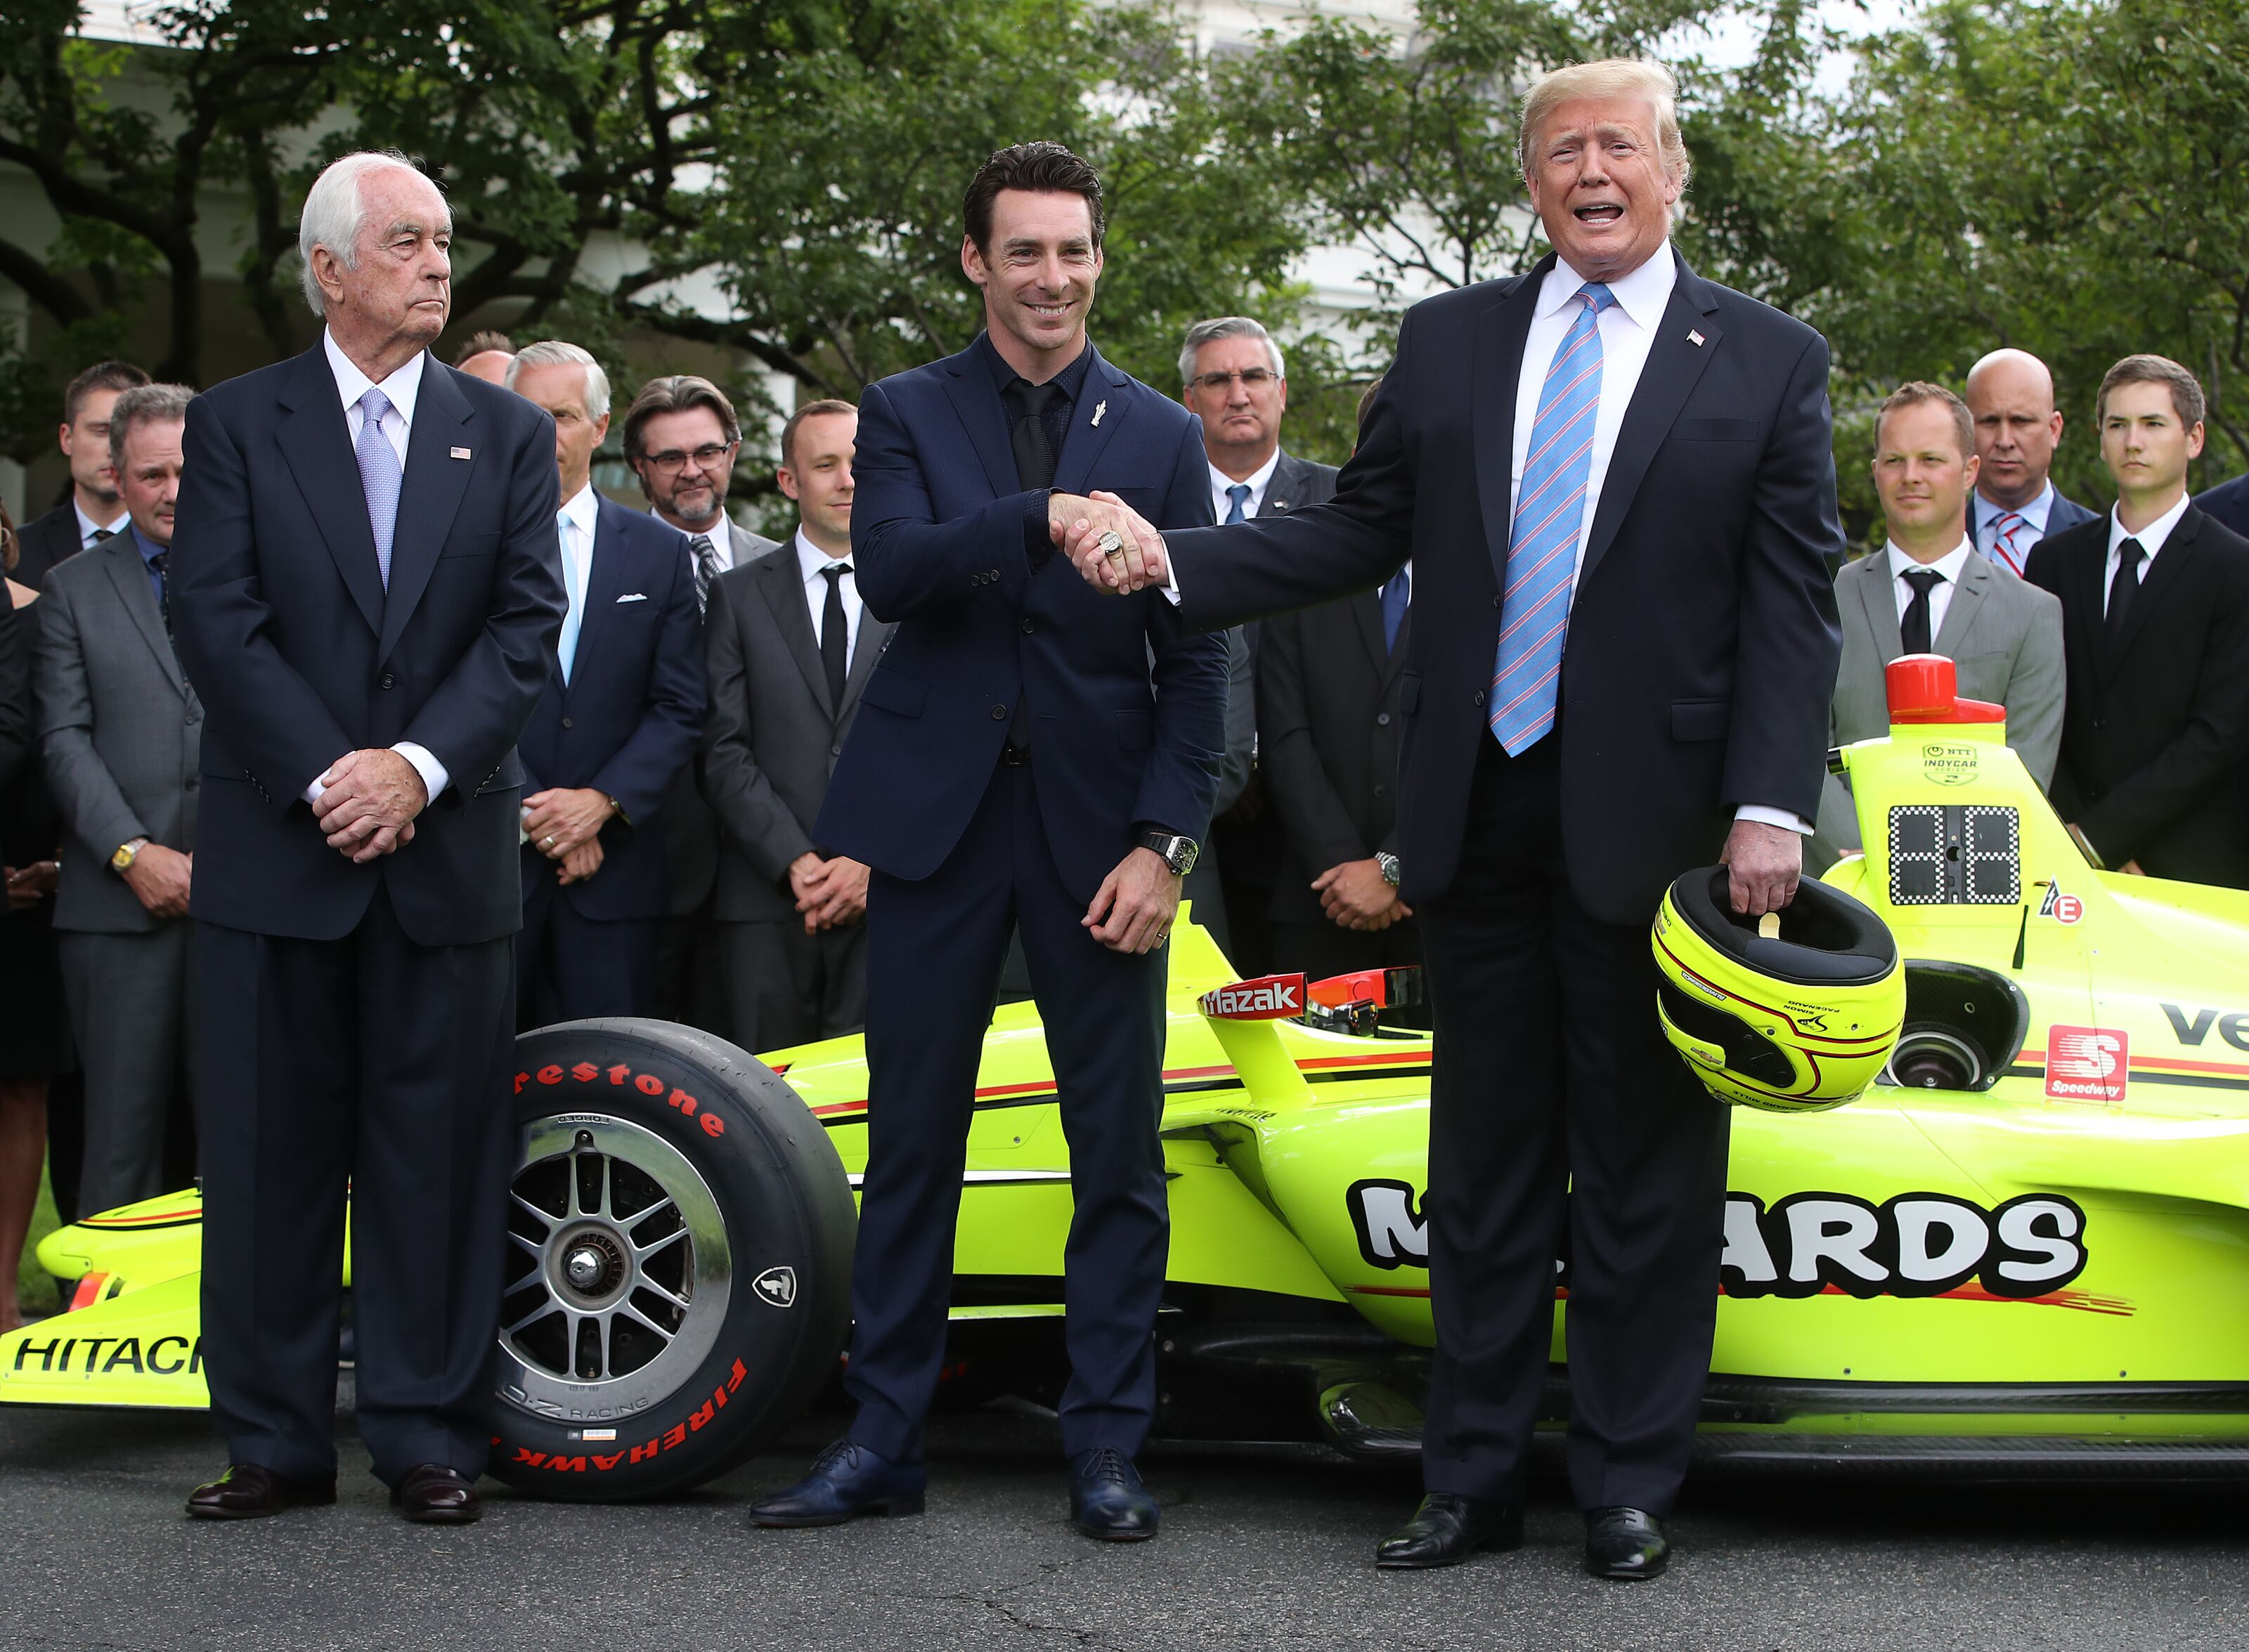 IndyCar: Simon Pagenaud, Team Penske take in White House experience